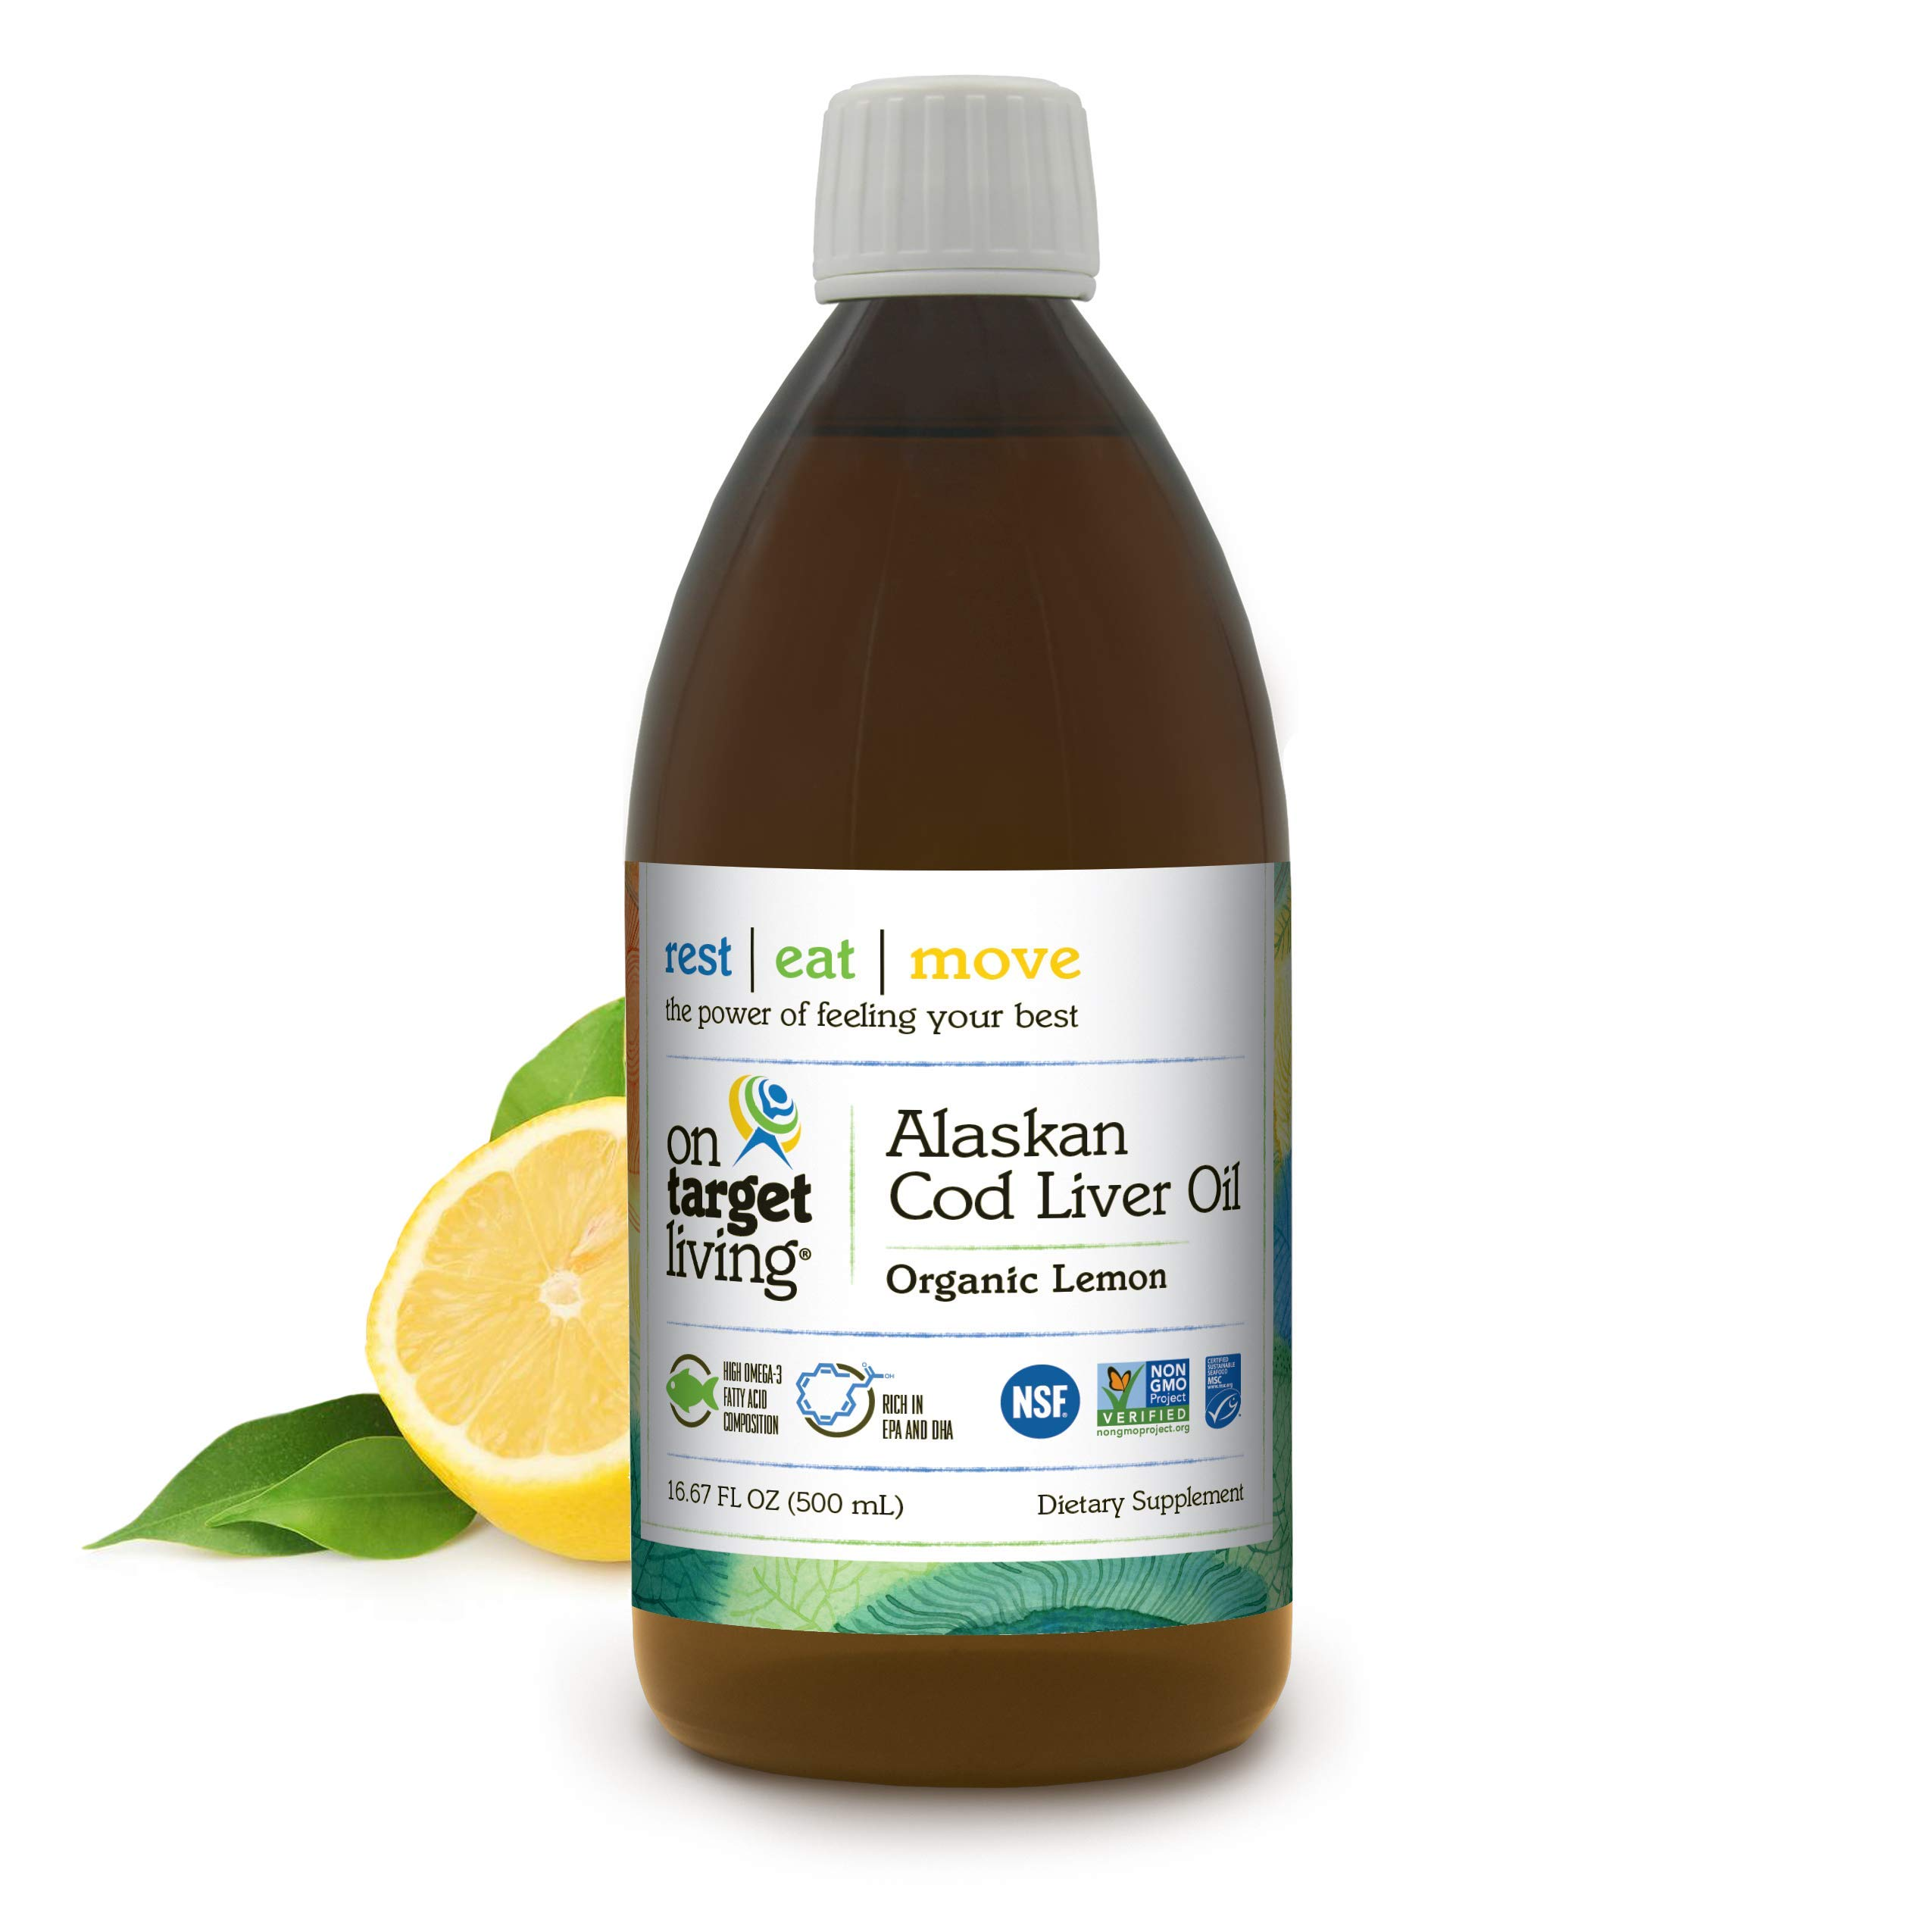 On Target Living Alaskan Cod Liver Oil Organic Lemon Flavor 16.67 oz | Made in The USA | Naturally Occurring Vitamin D | Rich in Omega 3 DHA/EPA | Non-GMO Project Certified |